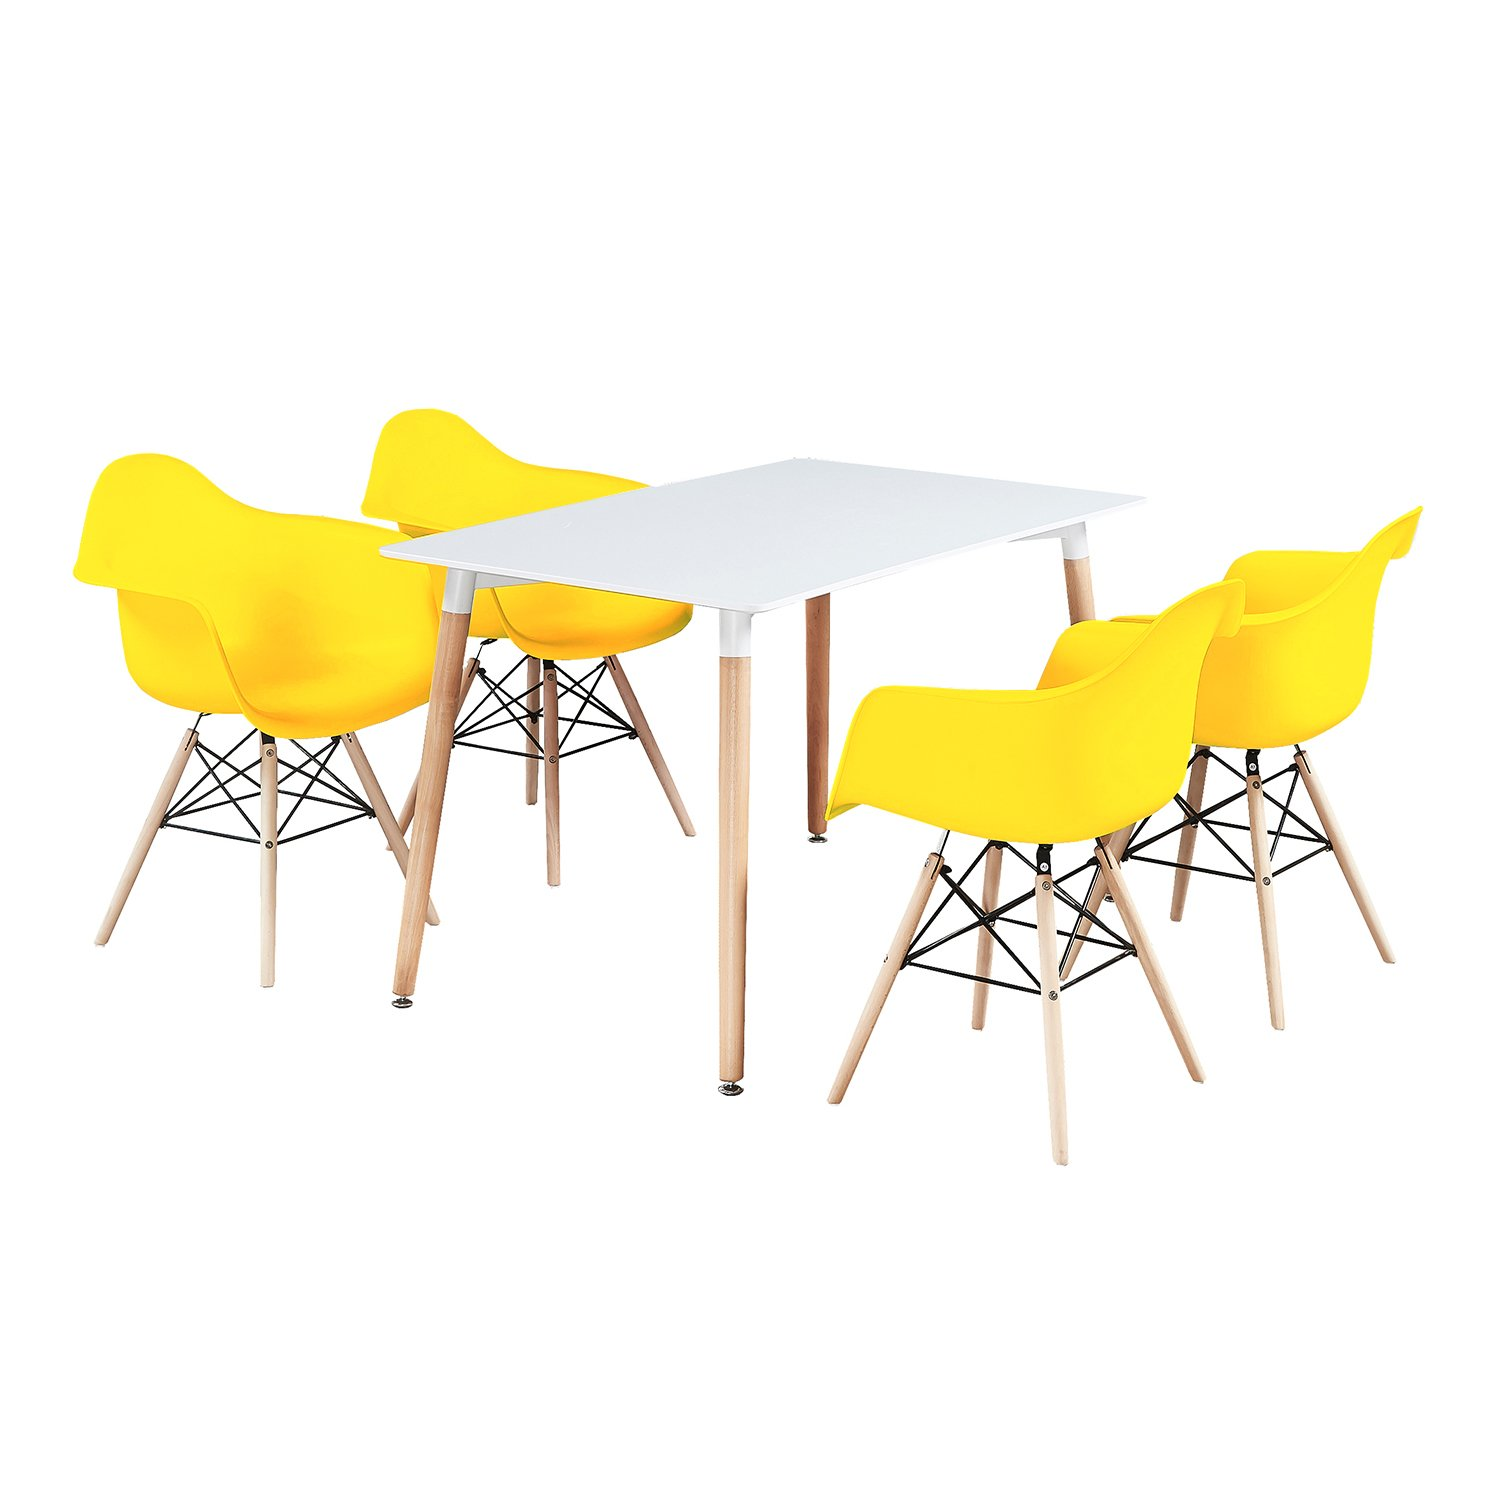 4 Chairs For Dining Room White Chairs Black Table P N Homewares Moda Eiffel Dining Set Dining Room Sets Home Kitchen